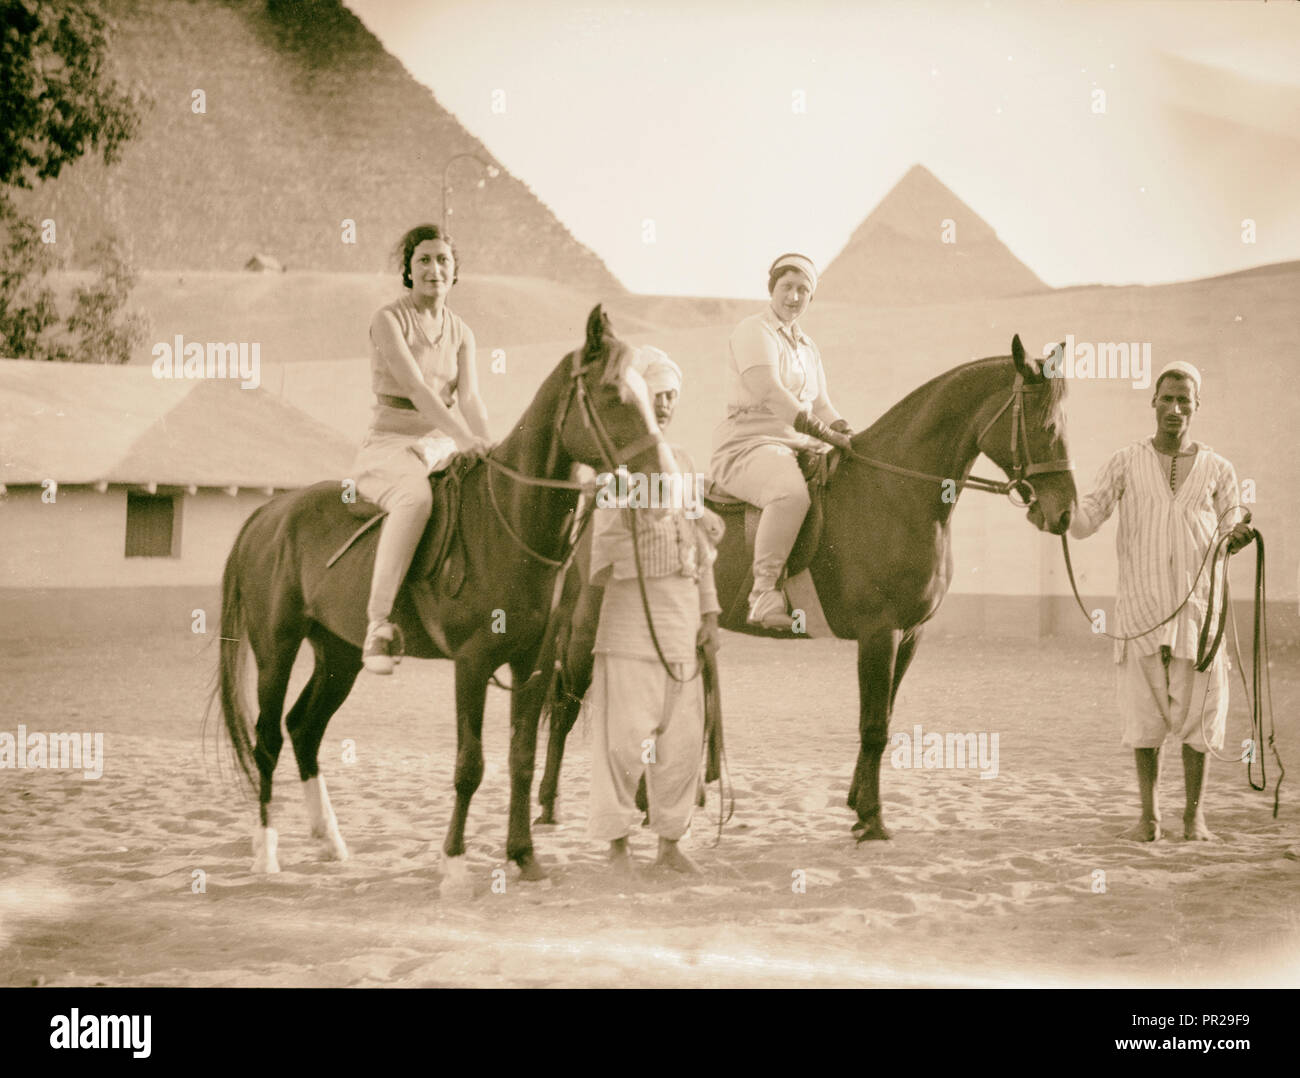 Egypt. Cairo. Hotels. Mena House. Guests riding near the Pyramids. 1934, Egypt, Cairo - Stock Image